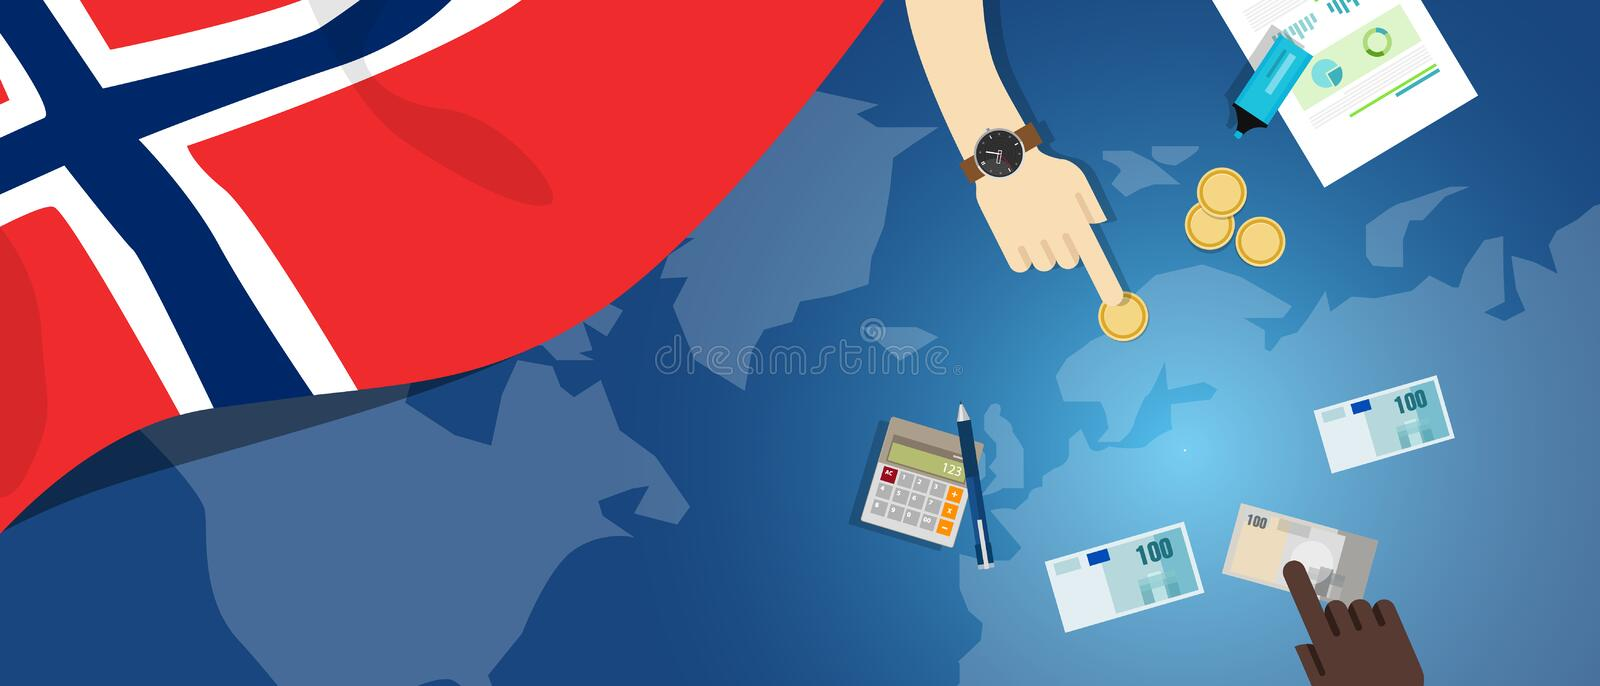 Norway economy fiscal money trade concept illustration of financial banking budget with flag map and currency. Vector royalty free illustration